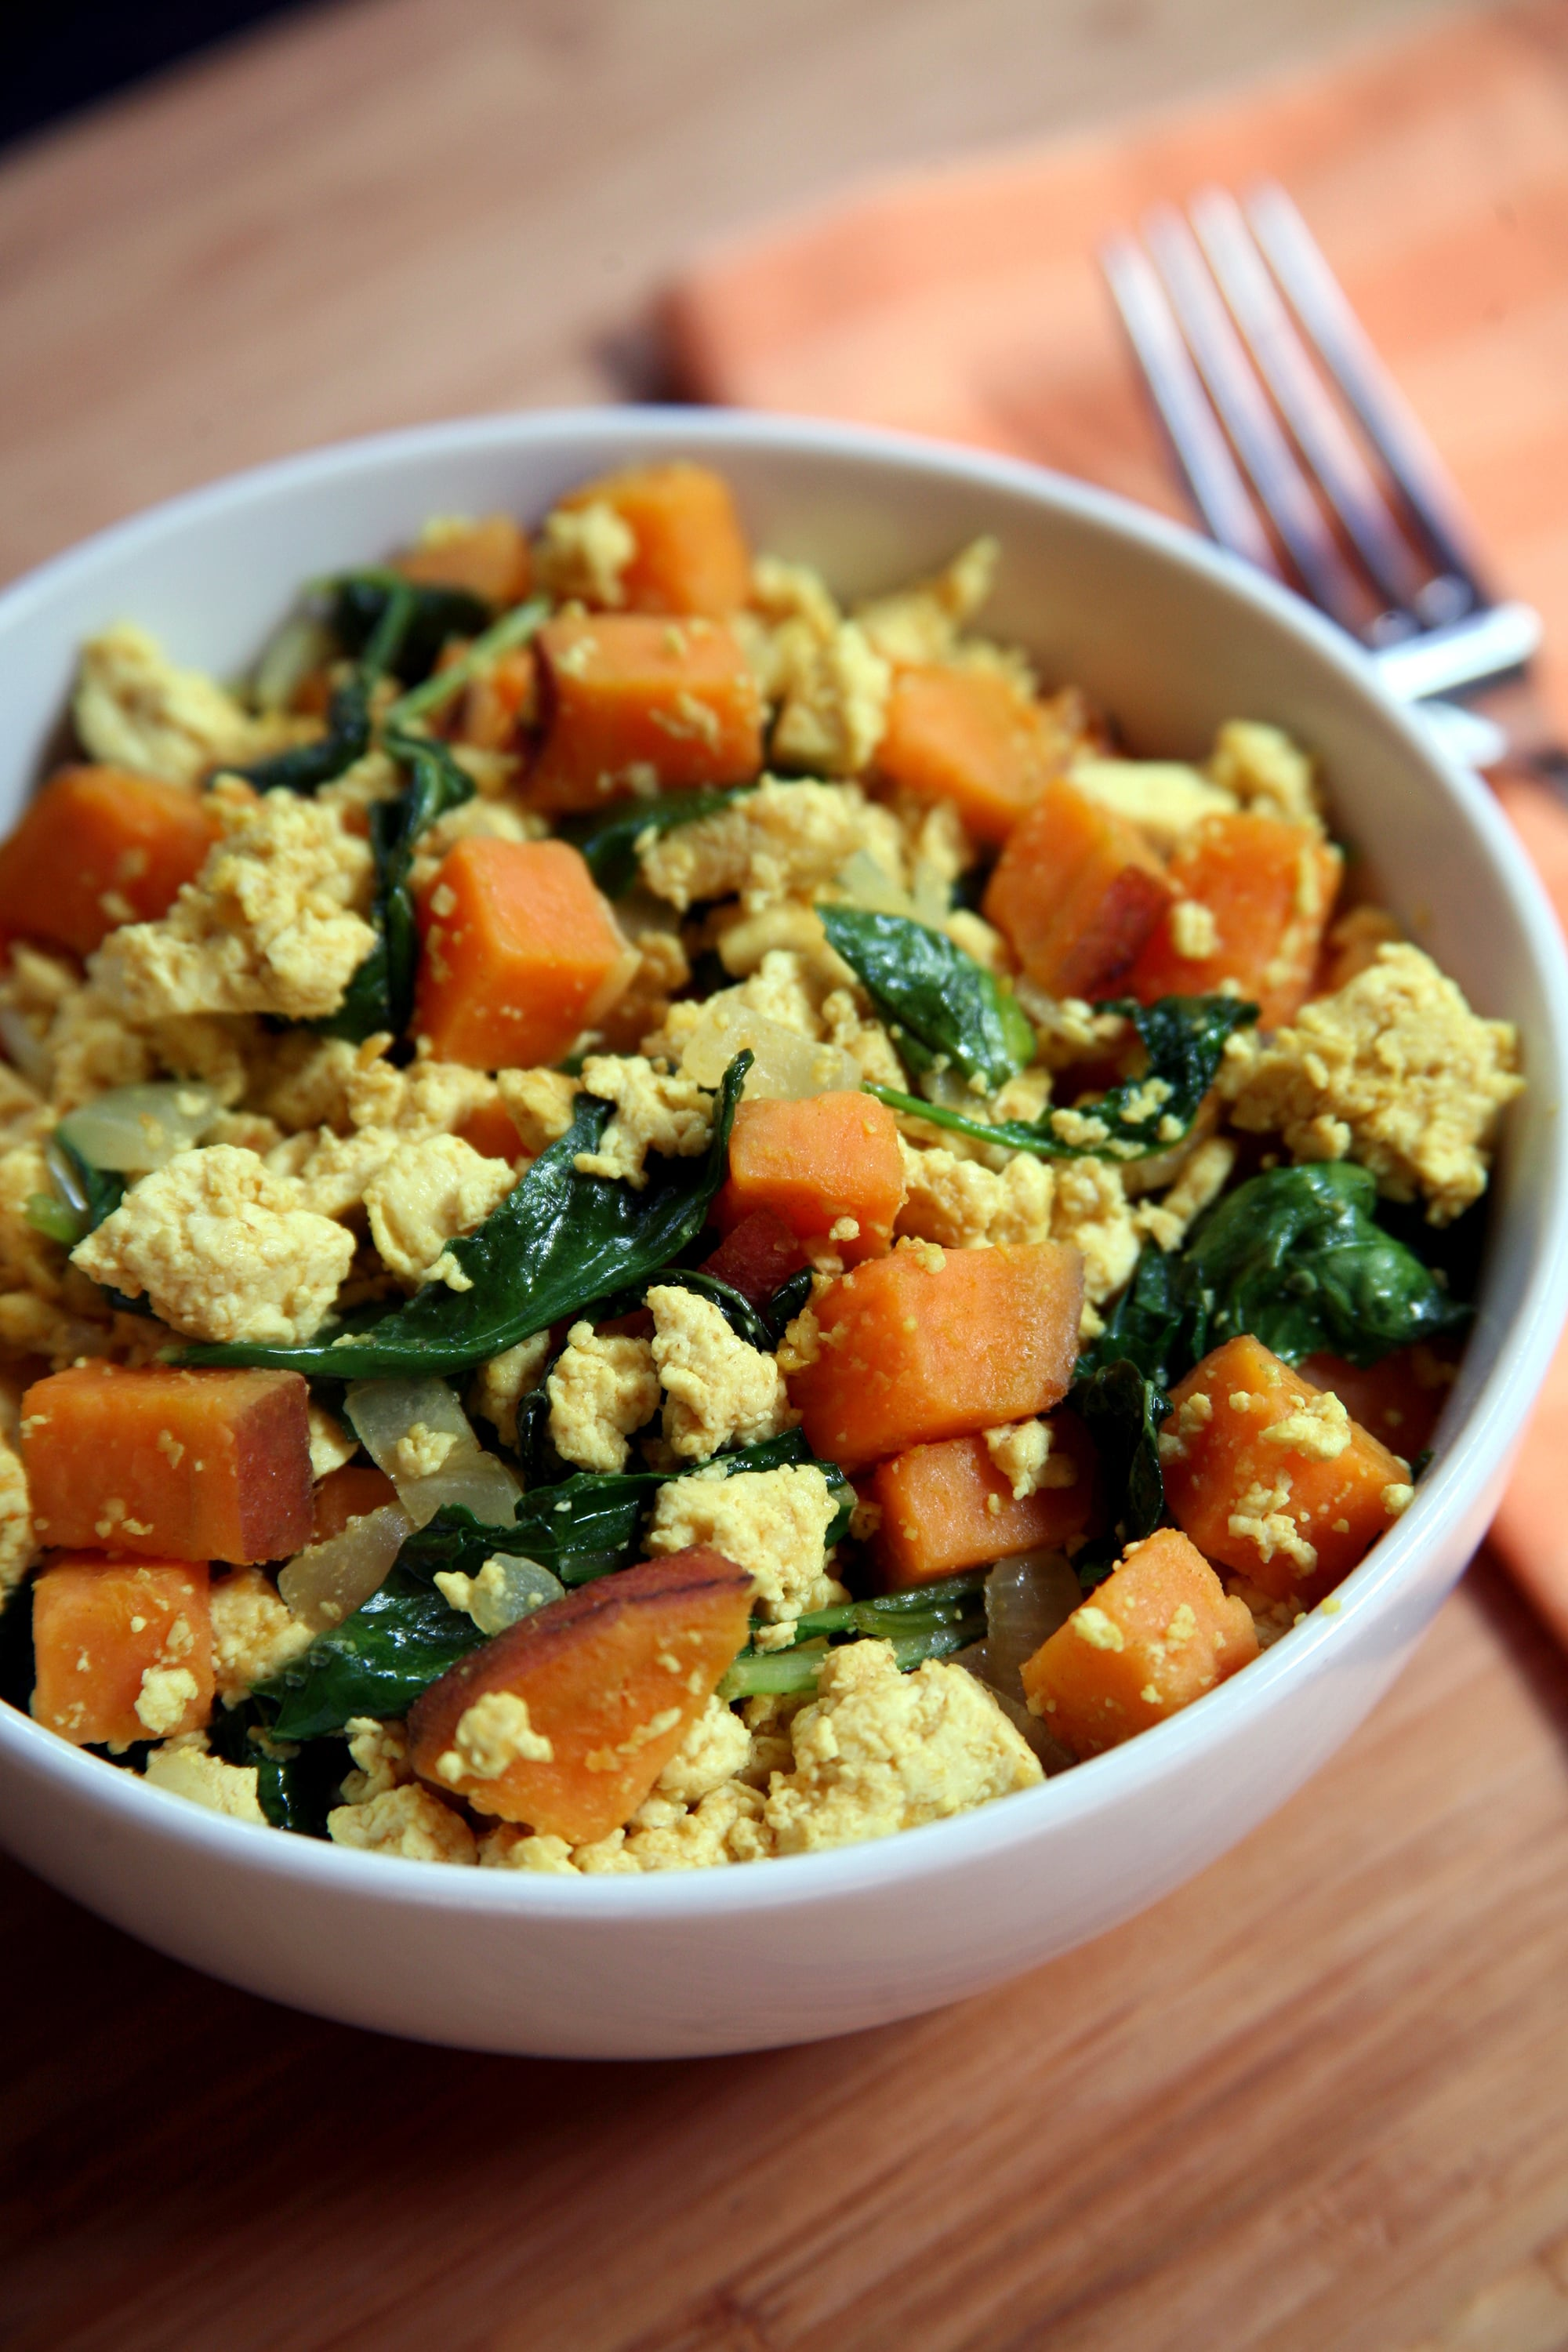 Protein Packed Breakfast Tofu Scramble With Kale And Sweet Potatoes